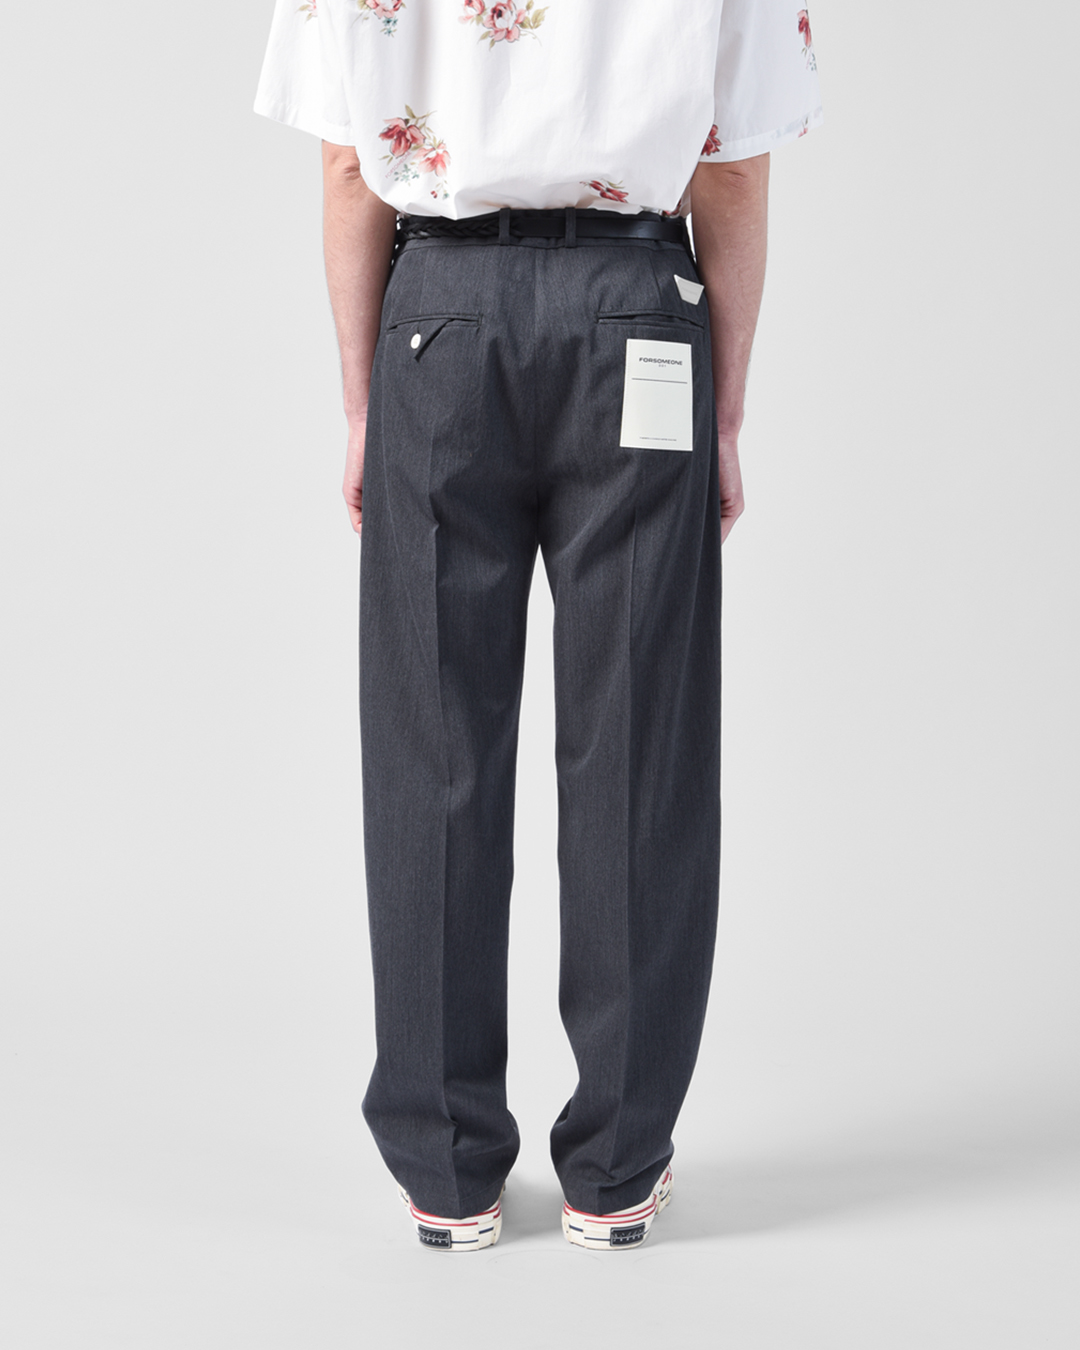 WORK TROUSERS 詳細画像 Navy 9